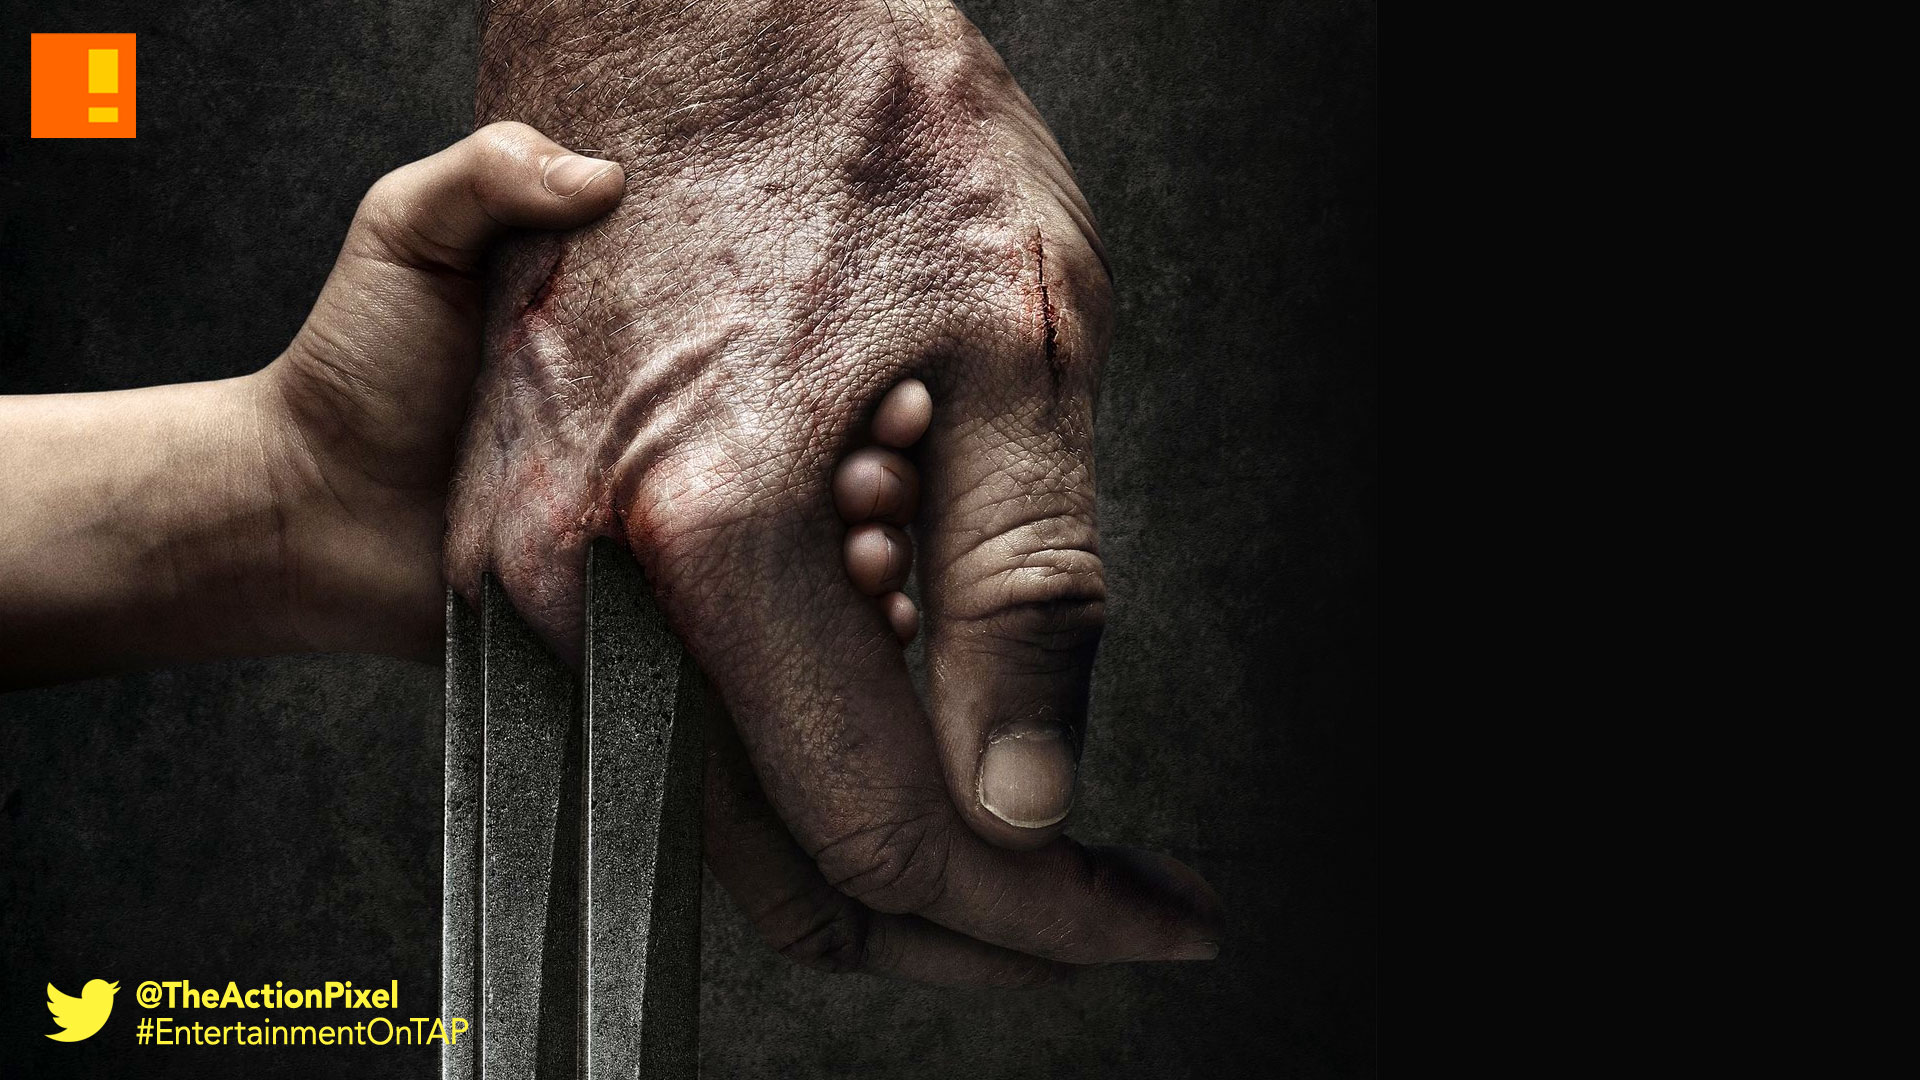 logan, poster, the action pixel, entertainment on tap, poster, wolverine, the wolverine 3, marvel, 20th century fox, hugh jackman,